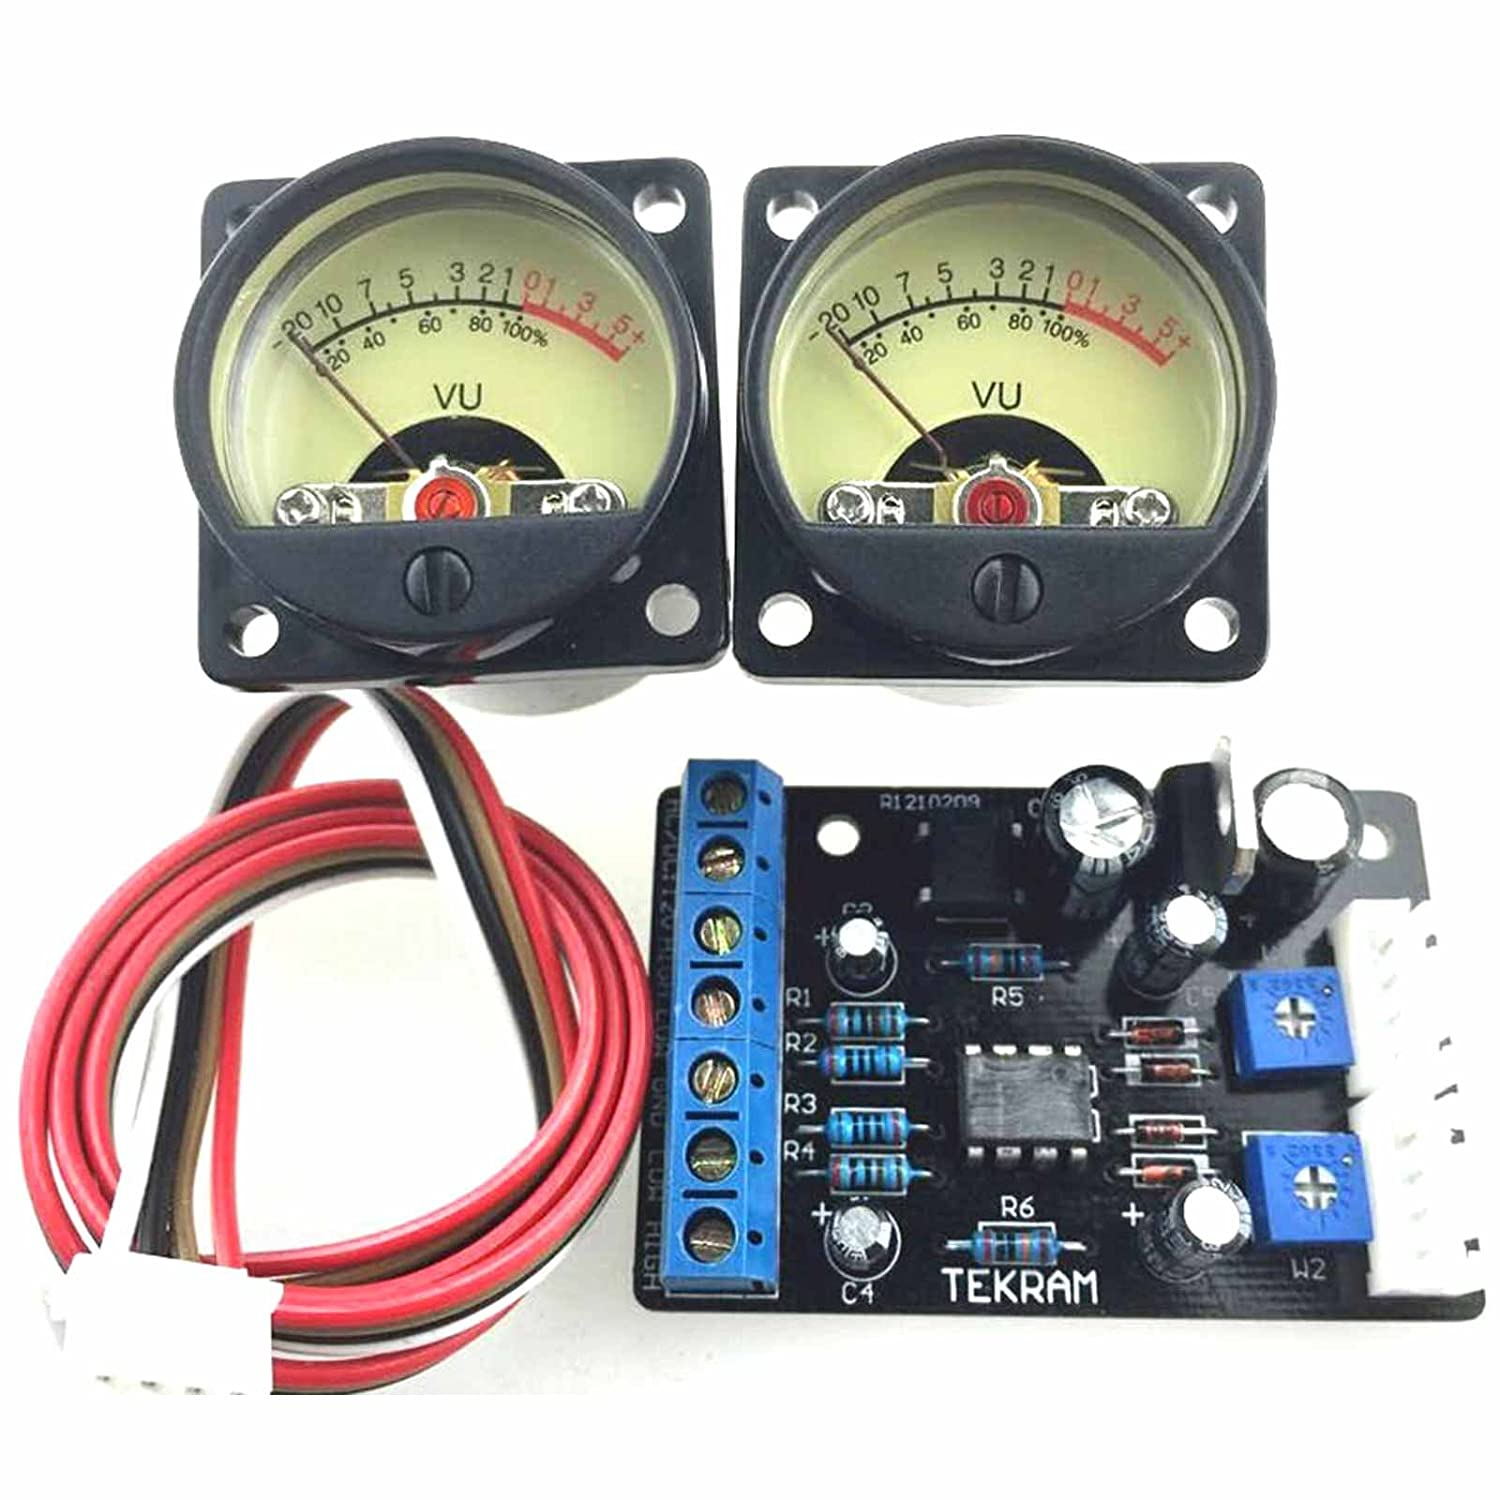 Tr 35 Audio Power Amplifier Panel Vu Meter Db Level Led How To Build 1 Circuit Diagram Header Driver Board Home Theater